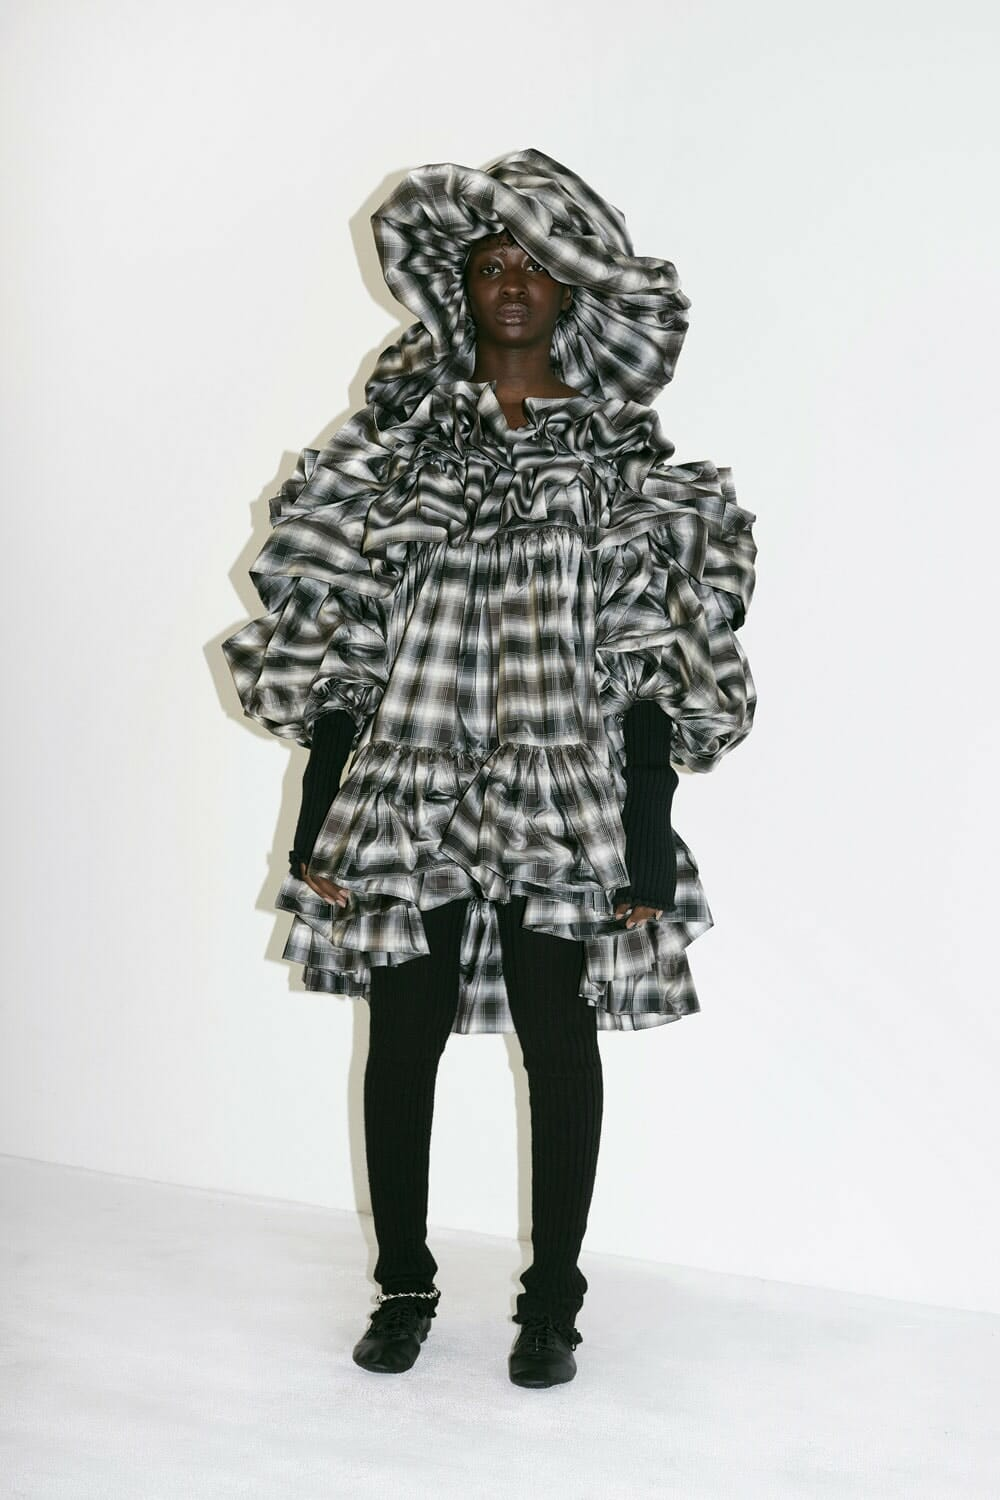 Ahlbom Vaquera Fall Winter 2021-2022 Paris. RUNWAY MAGAZINE ® Collections. RUNWAY NOW / RUNWAY NEW